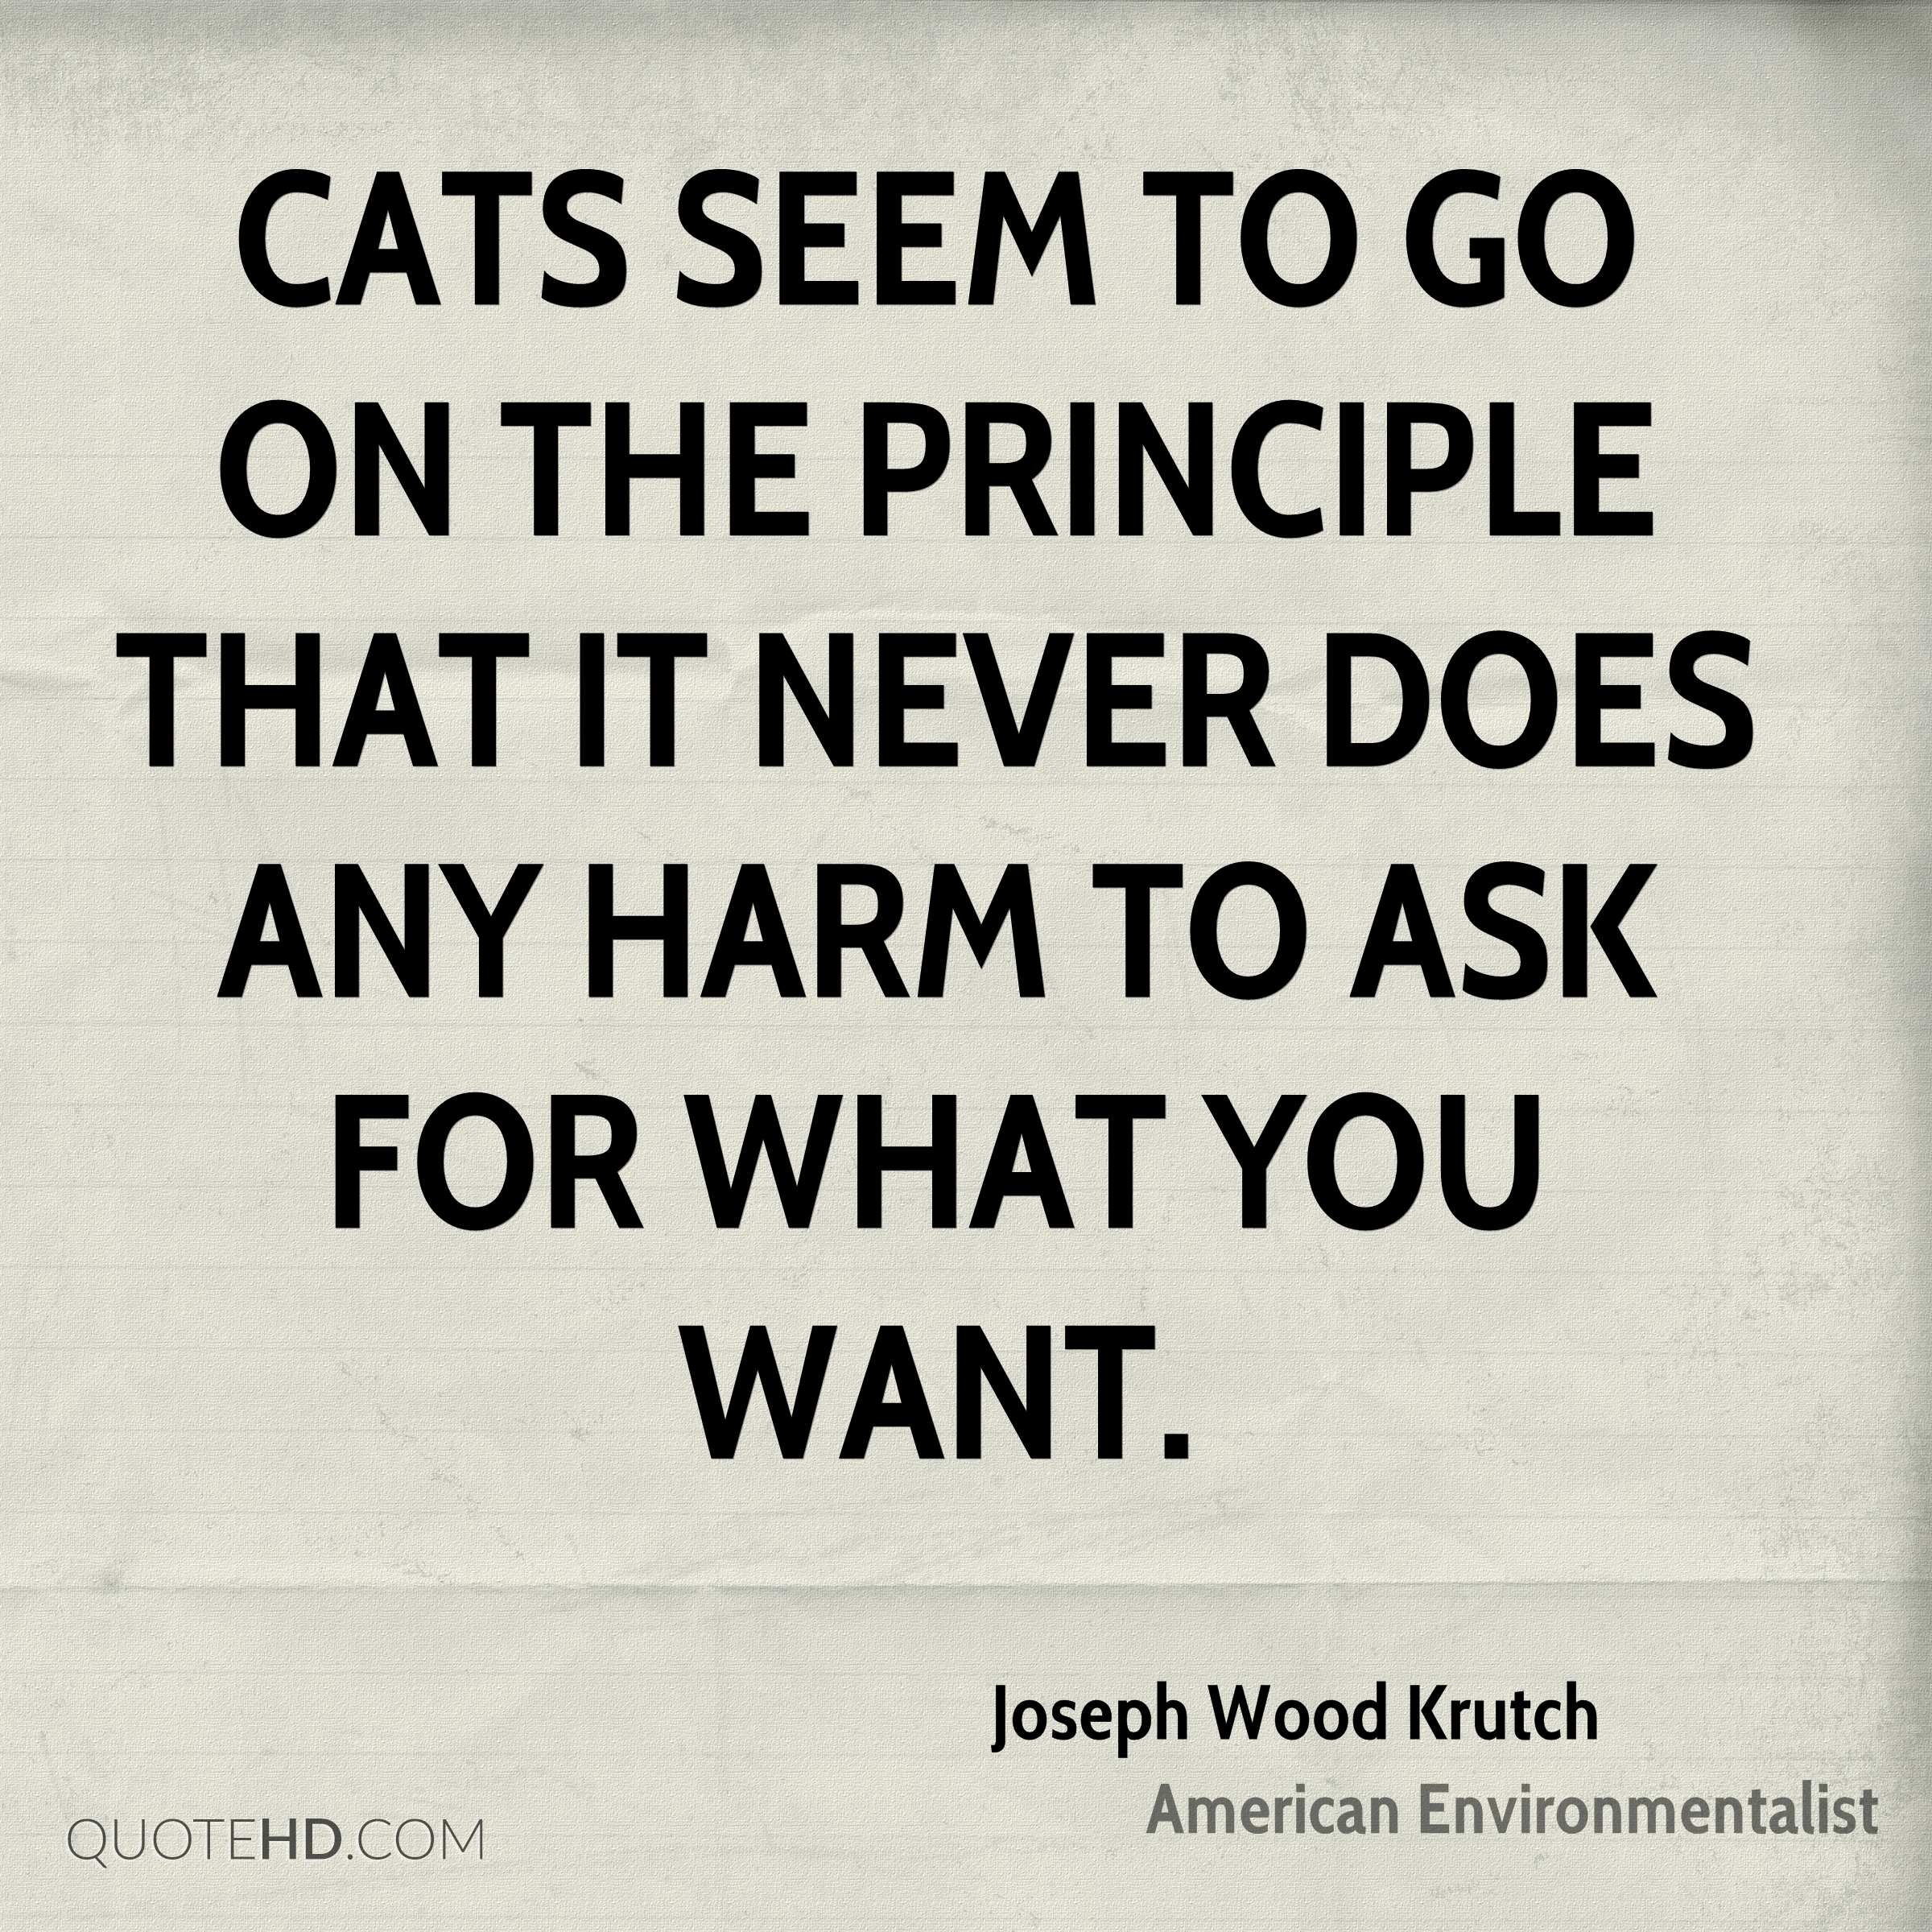 Cats seem to go on the principle that it never does any harm to ask for what you want.